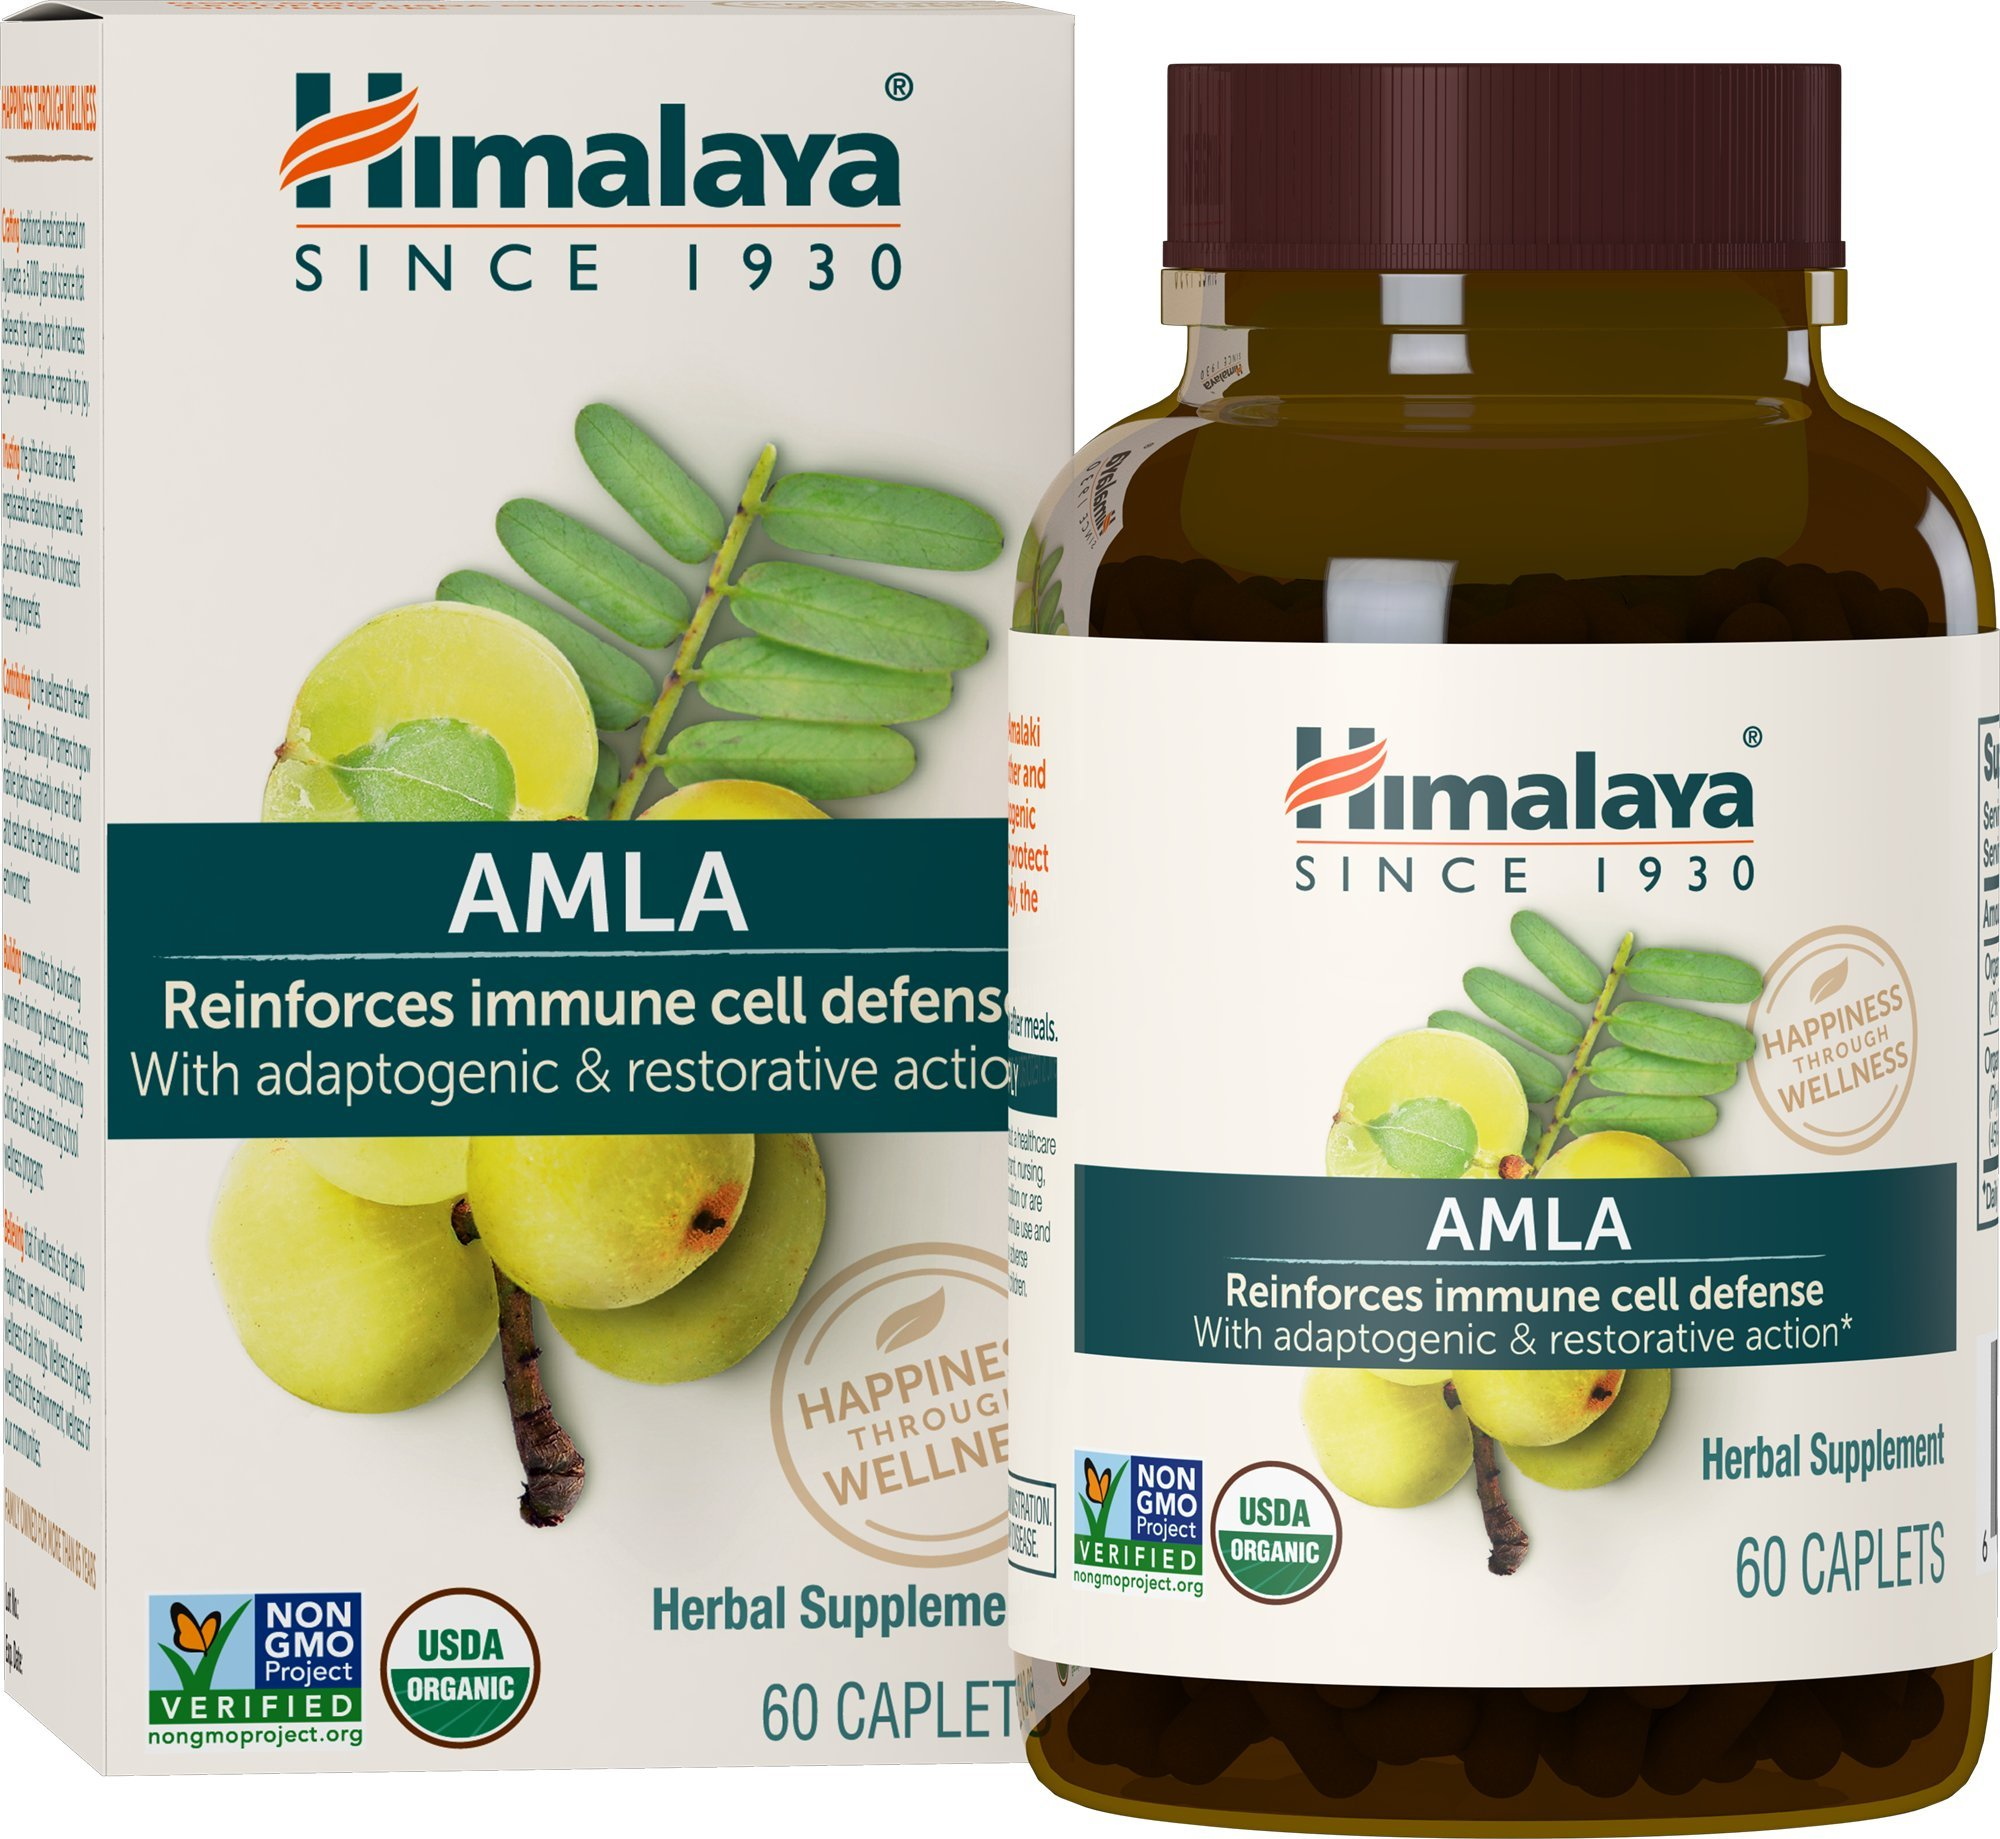 Himalaya Organic Amla, Equivalent to 1,406 mg of Amla Powder, Natural Antioxidant for Immune Support, 60 Caplets, 1 Month Supply